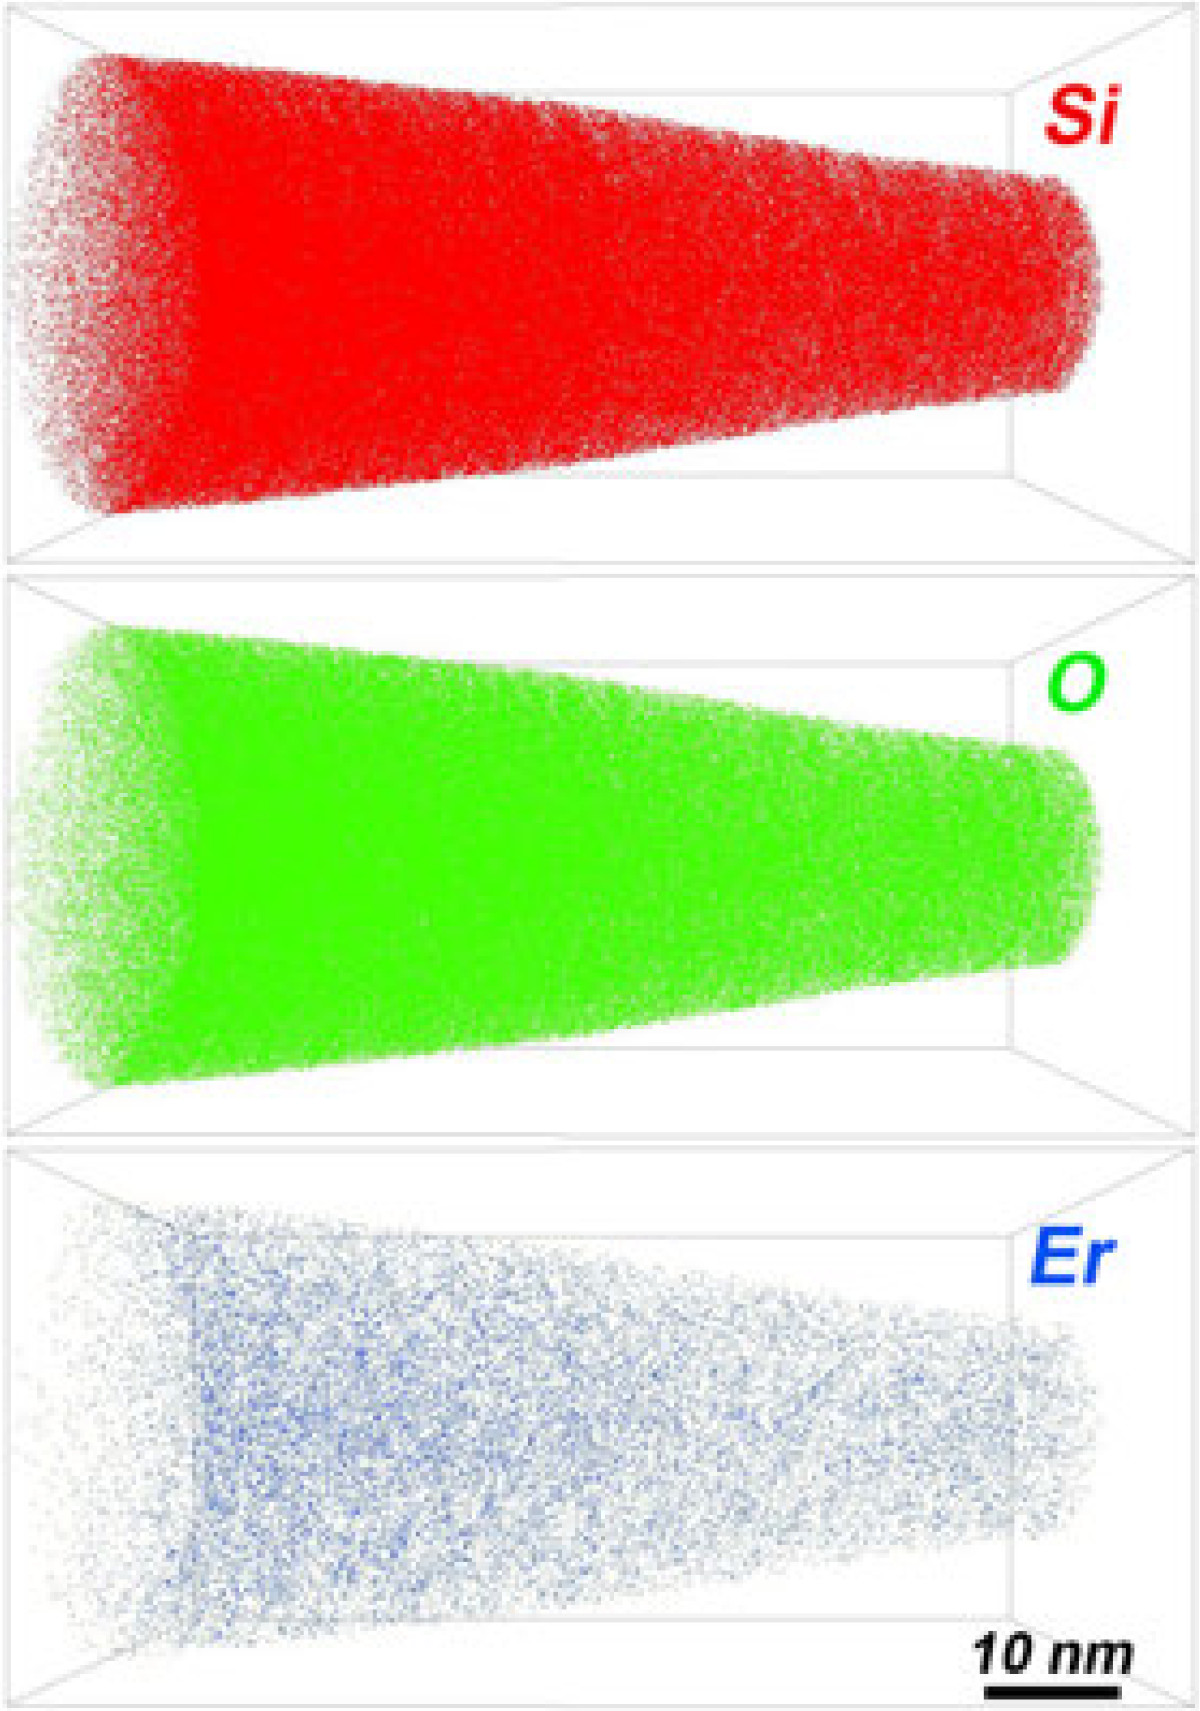 http://static-content.springer.com/image/art%3A10.1186%2F1556-276X-8-39/MediaObjects/11671_2012_Article_1265_Fig3_HTML.jpg